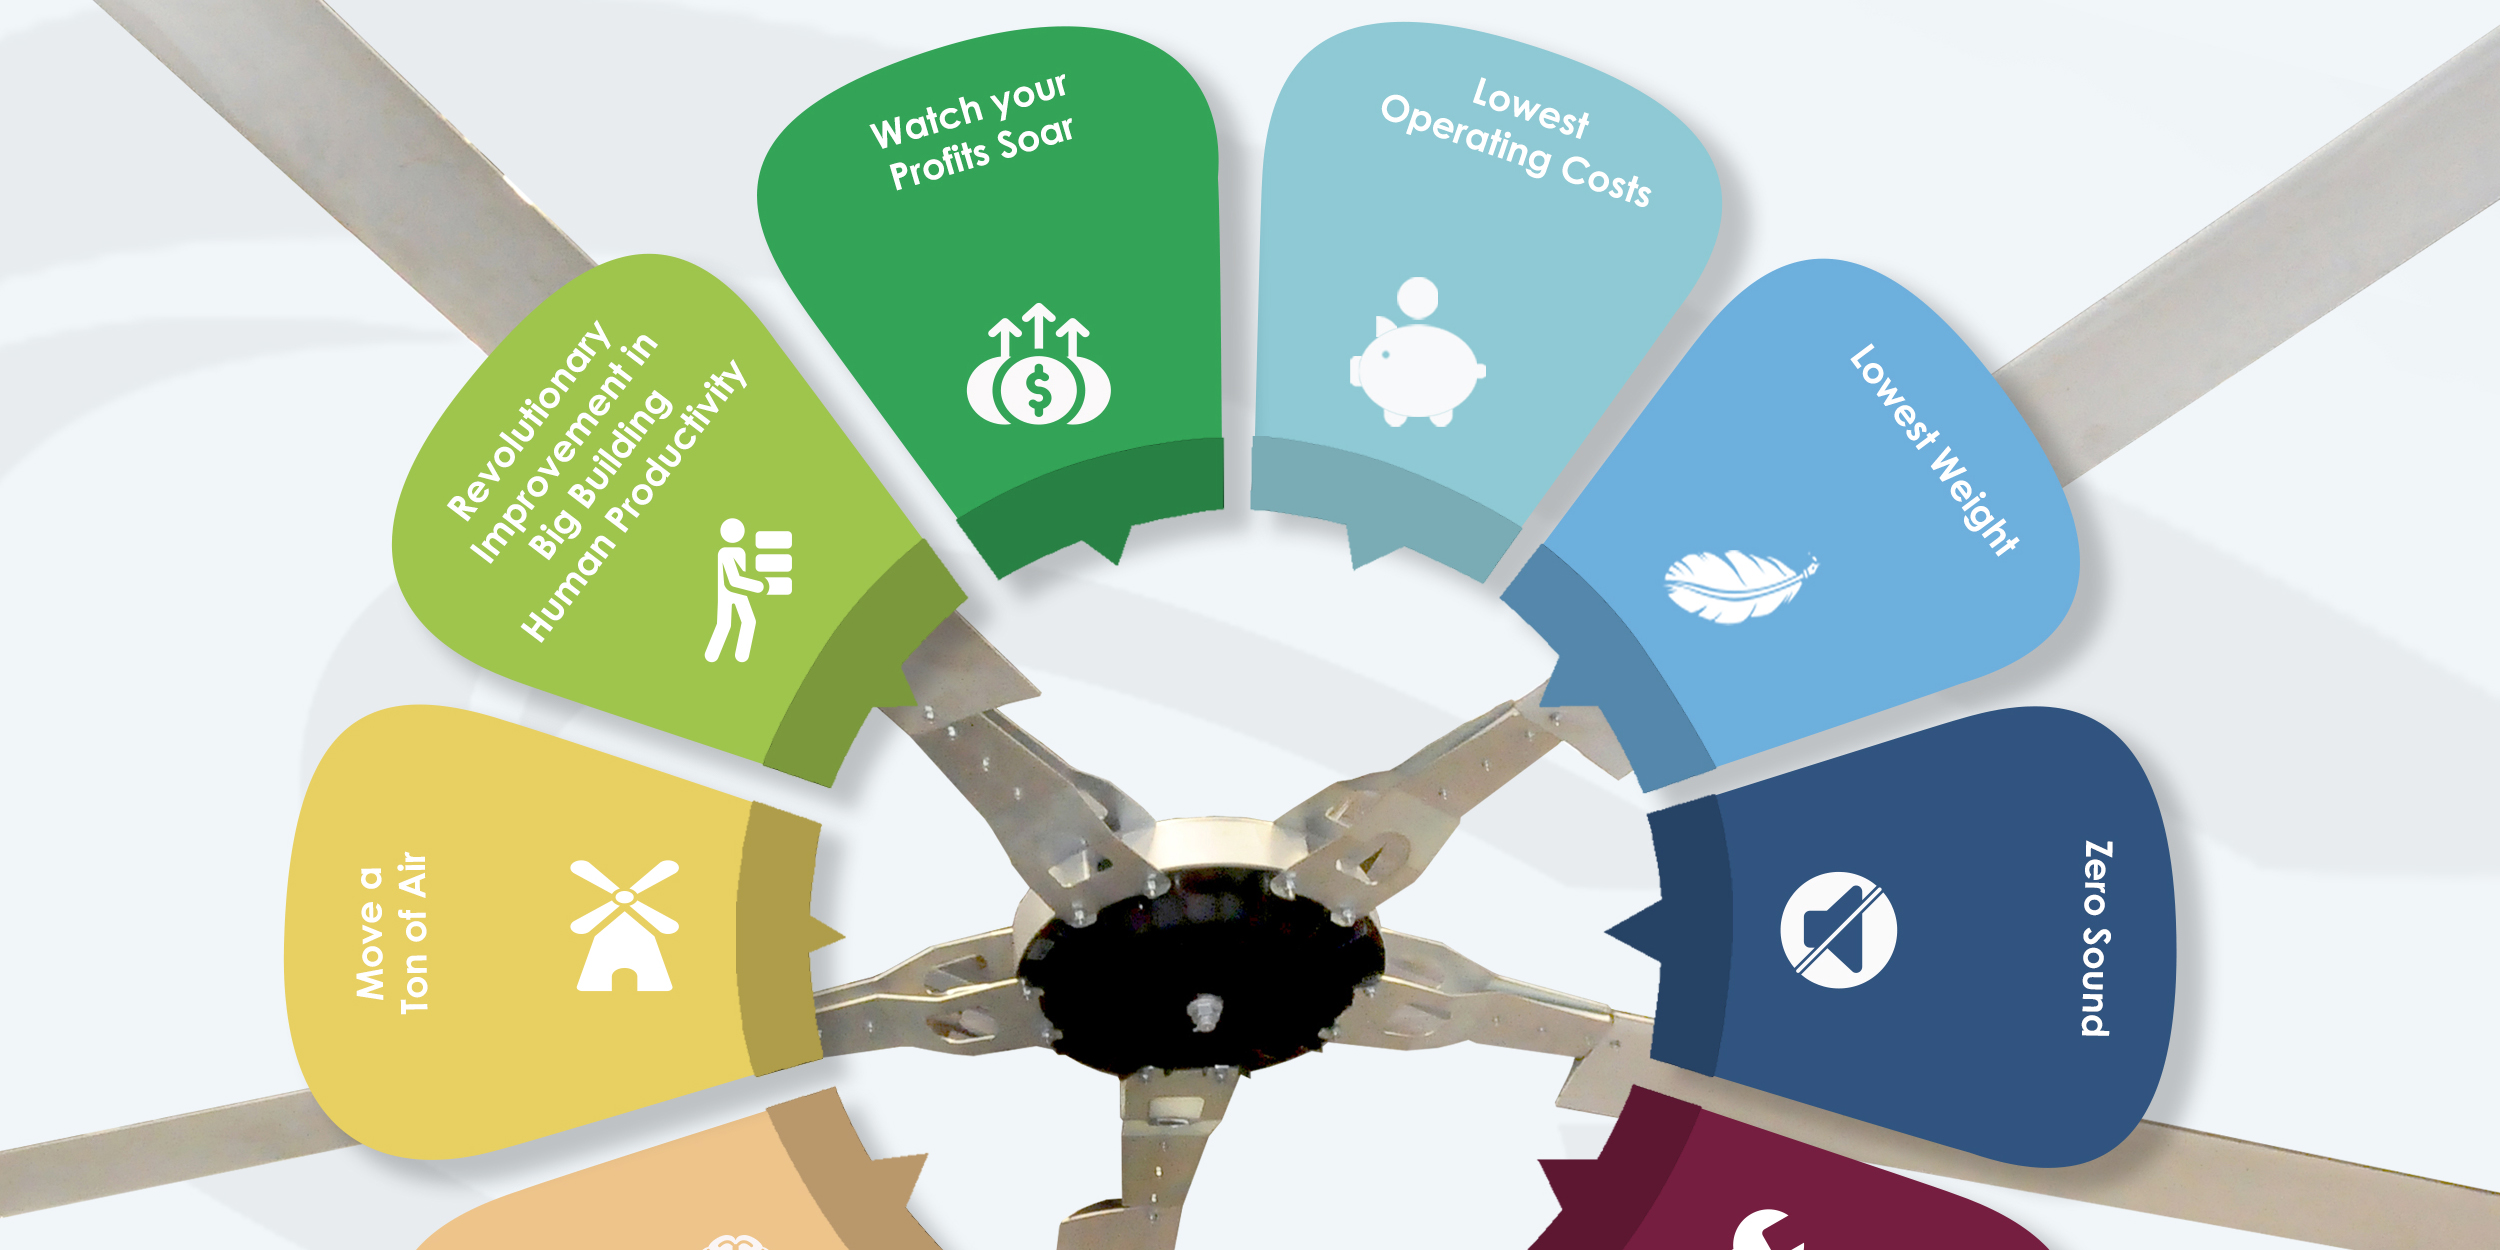 The 10-point benefit Wheel